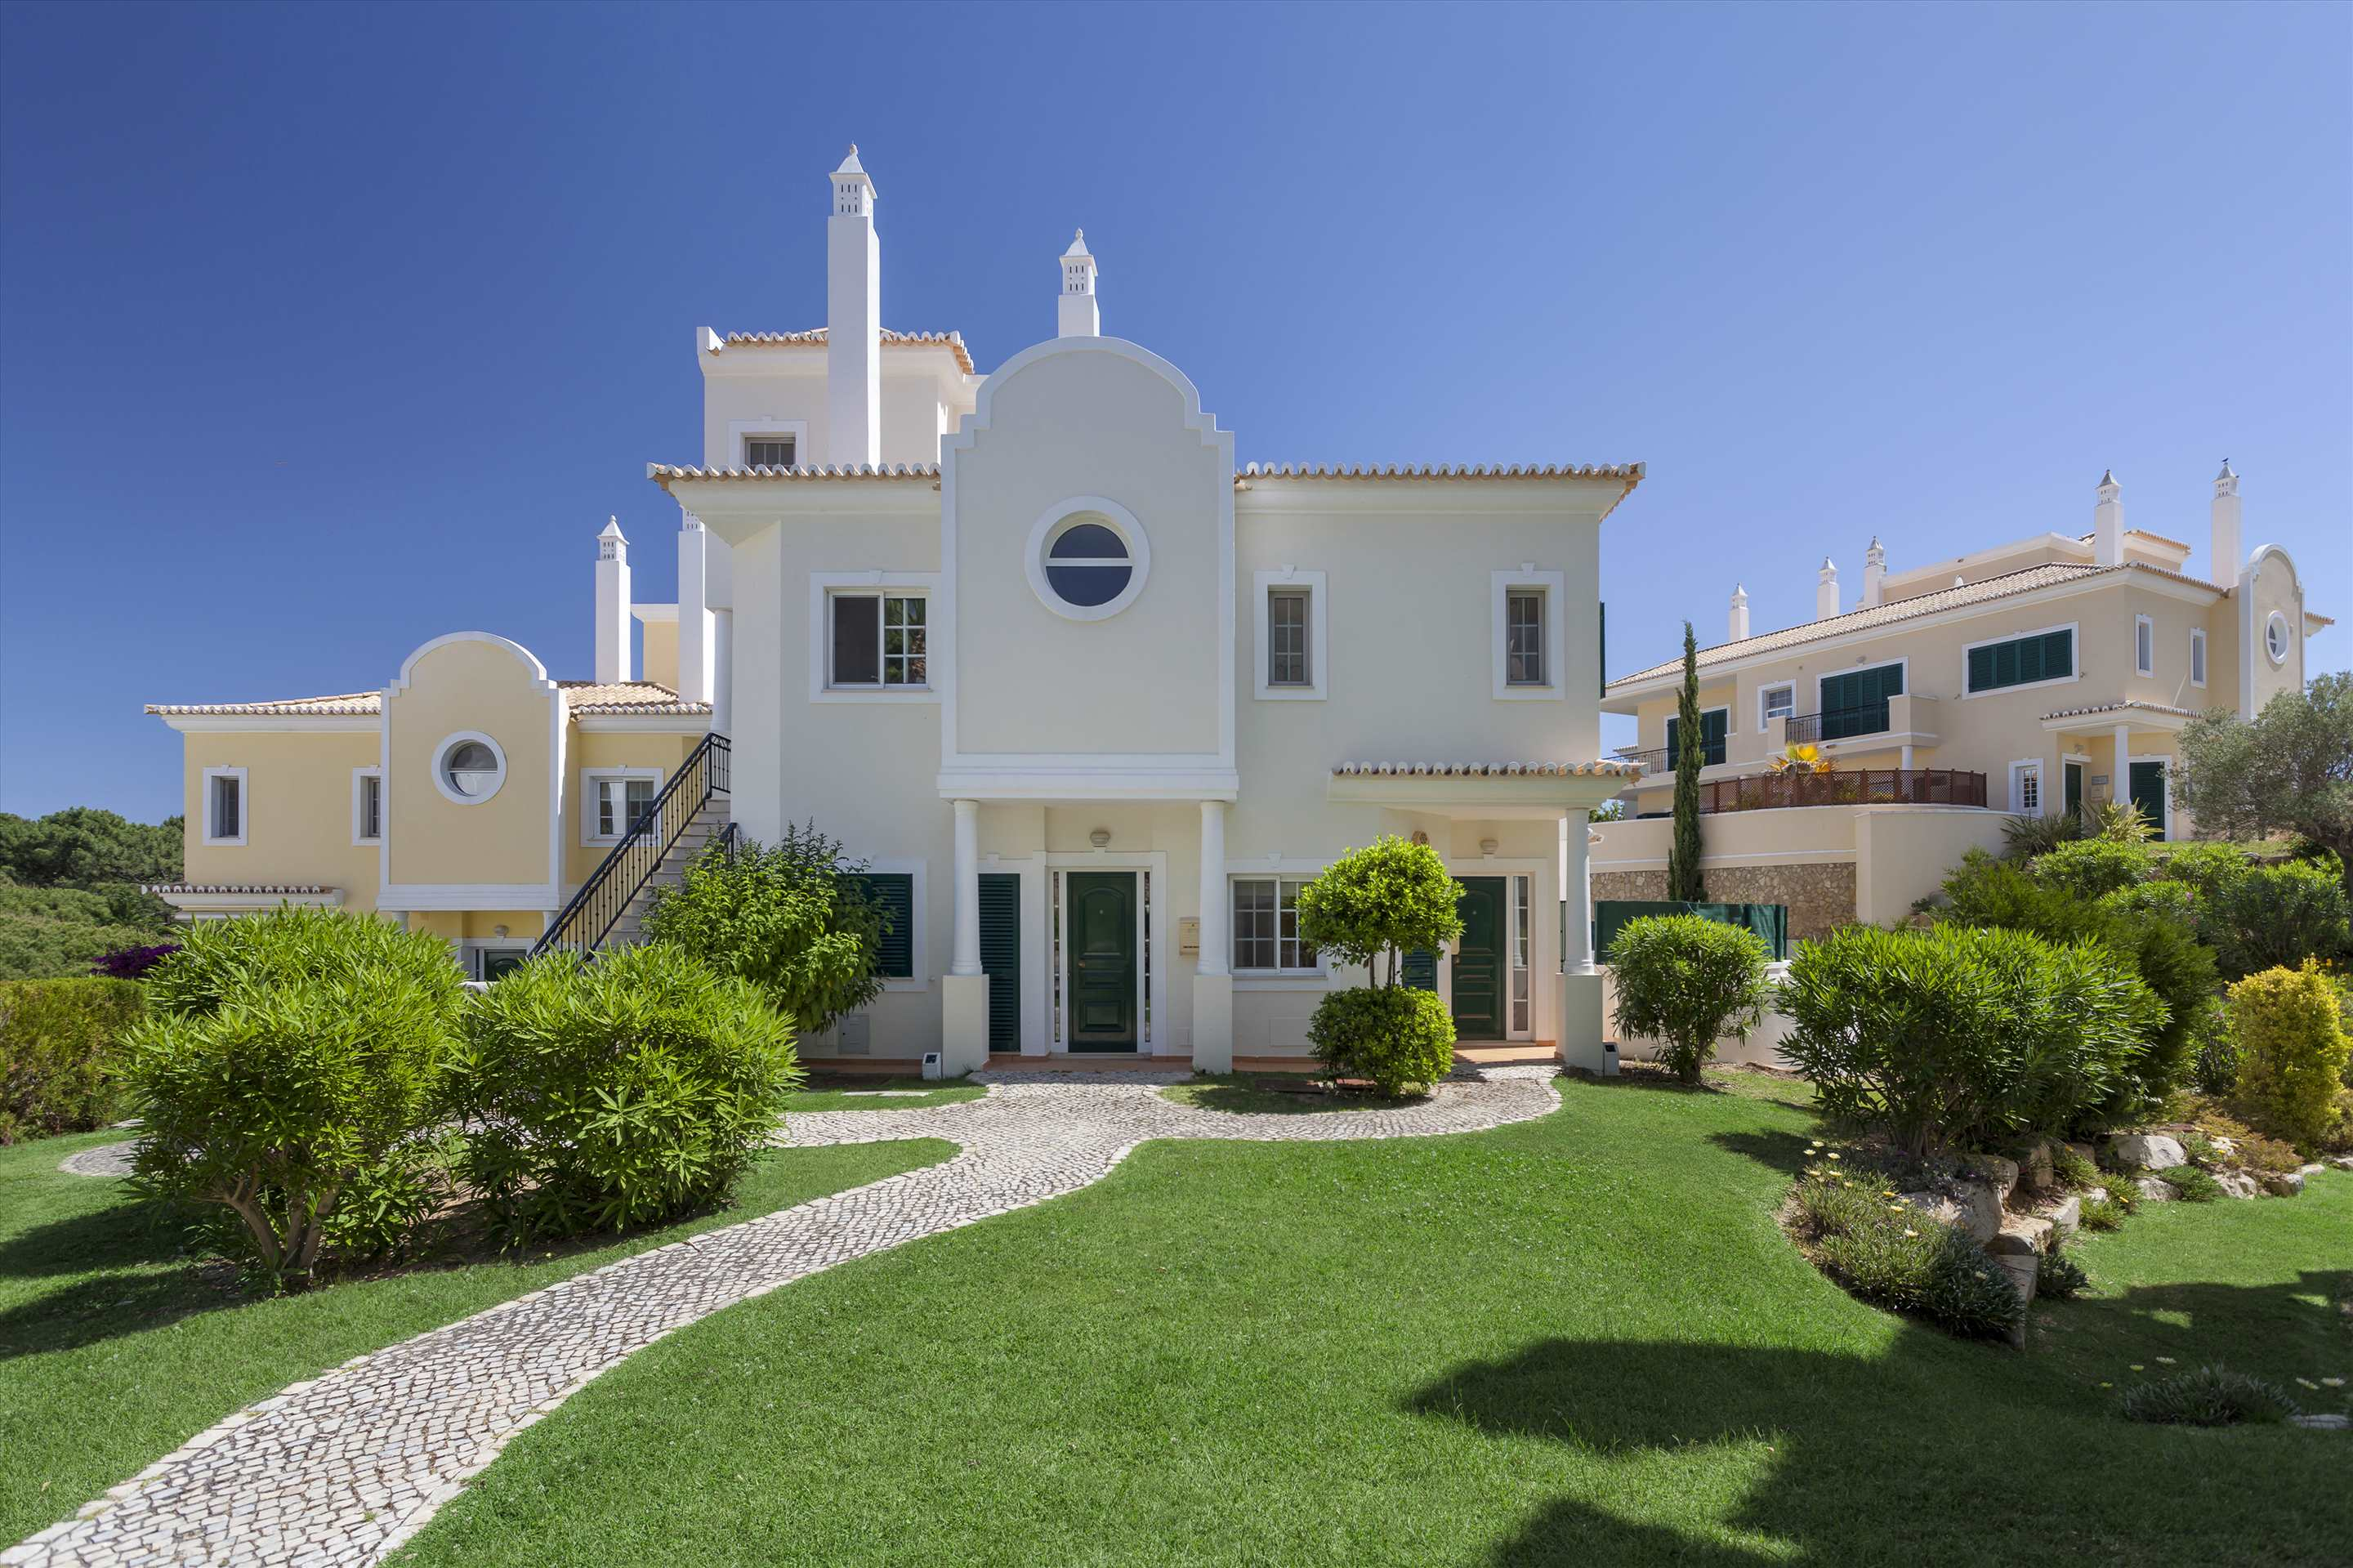 Villa Catarina, 3 bedroom apartment in Vale do Lobo, Algarve Photo #3